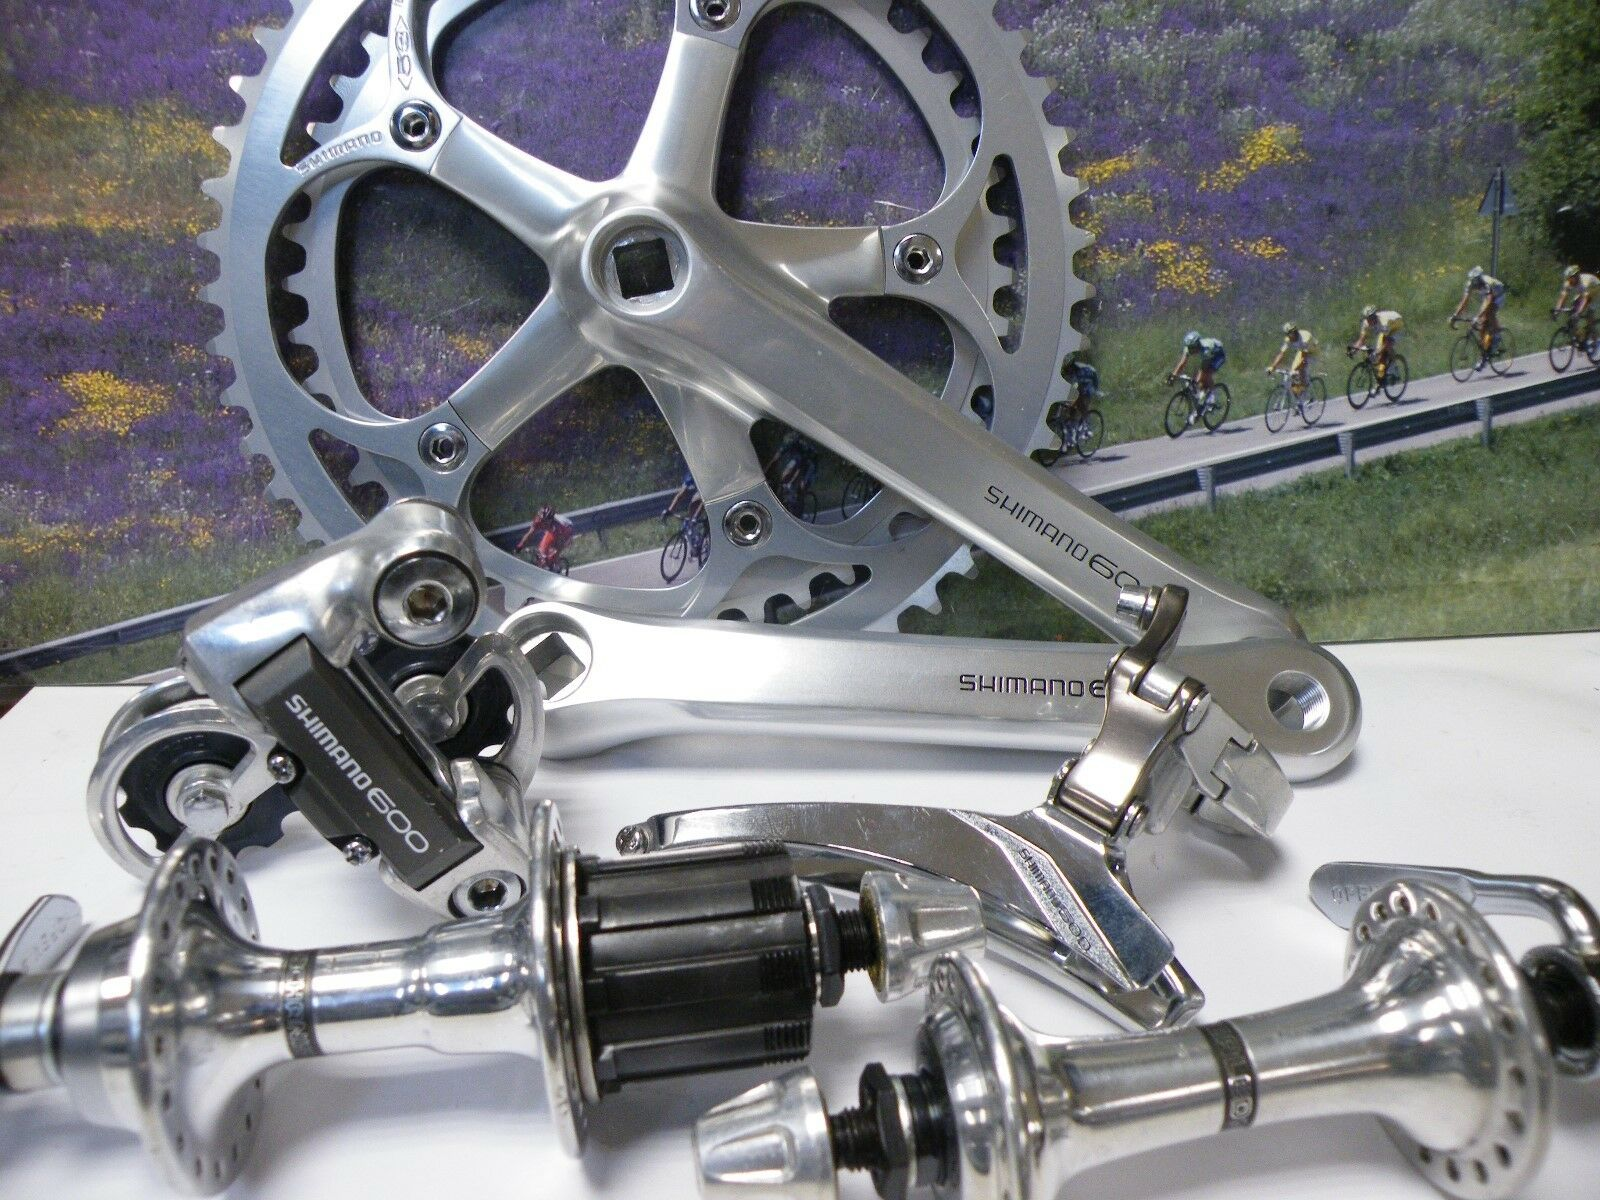 Shimano New 600 6207 partial groupset